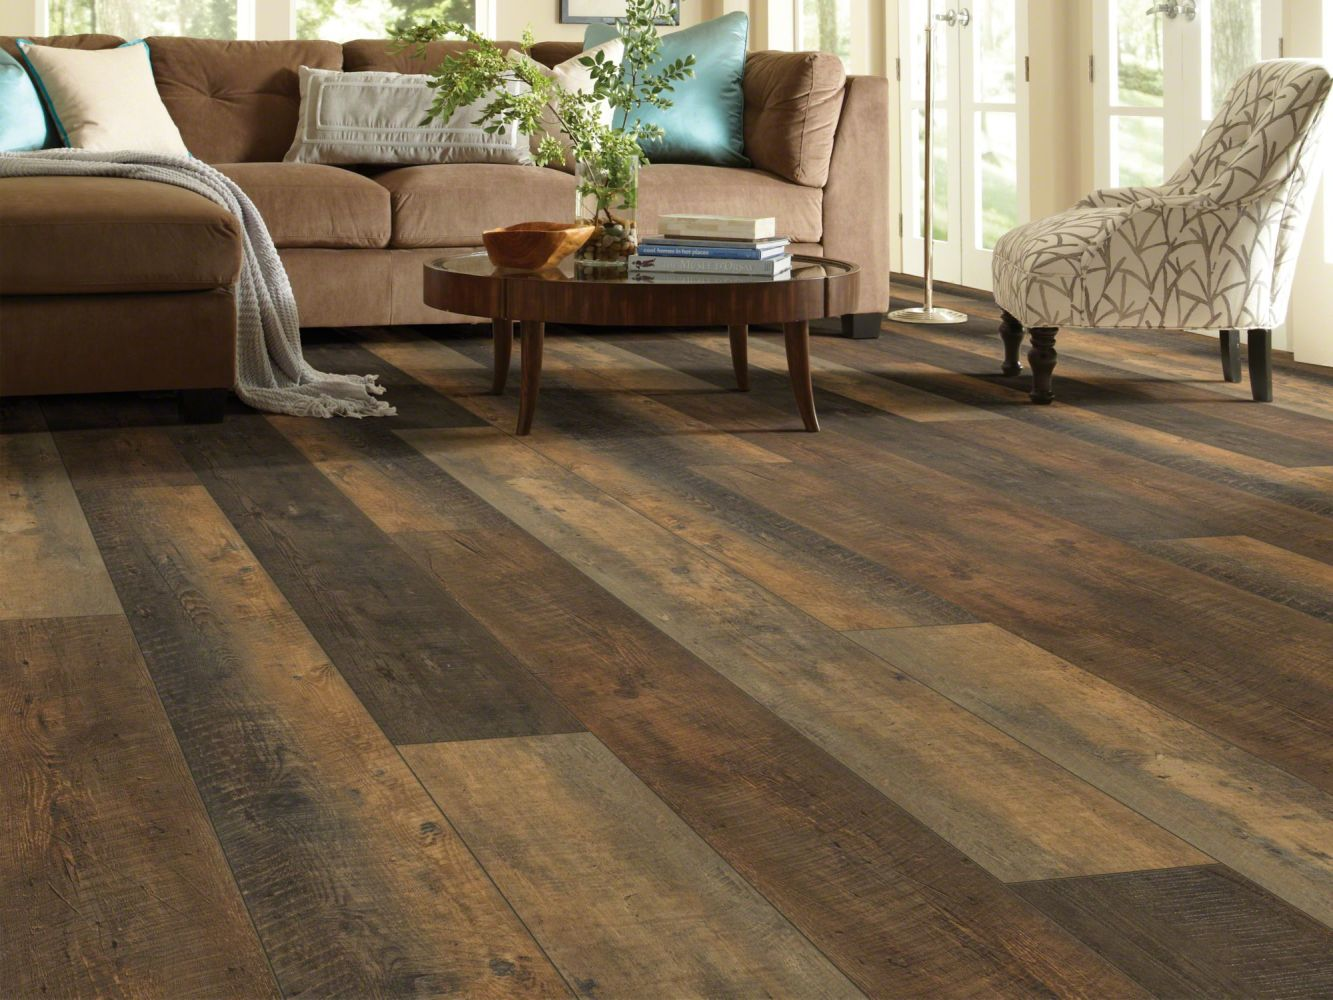 Shaw Floors Resilient Residential Titan HD Plus Autumn Barnboard 00689_2002V